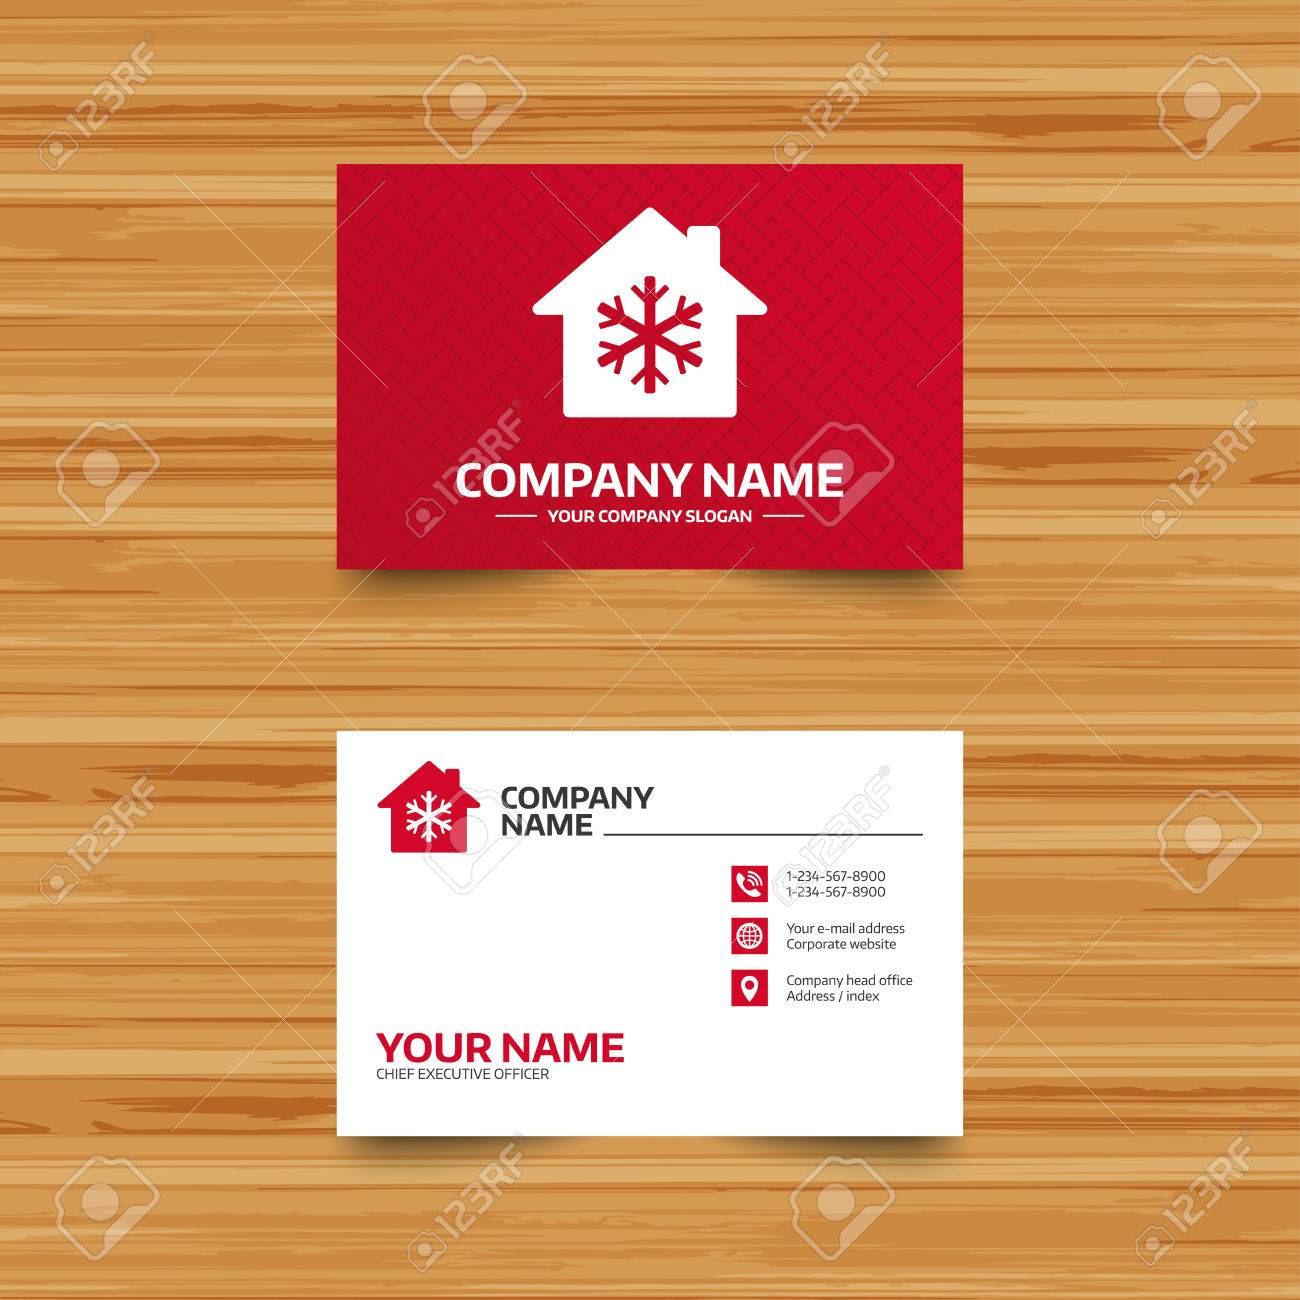 Air conditioning business cards choice image free business cards hvac business card template images free business cards air conditioning business cards images free business cards magicingreecefo Image collections